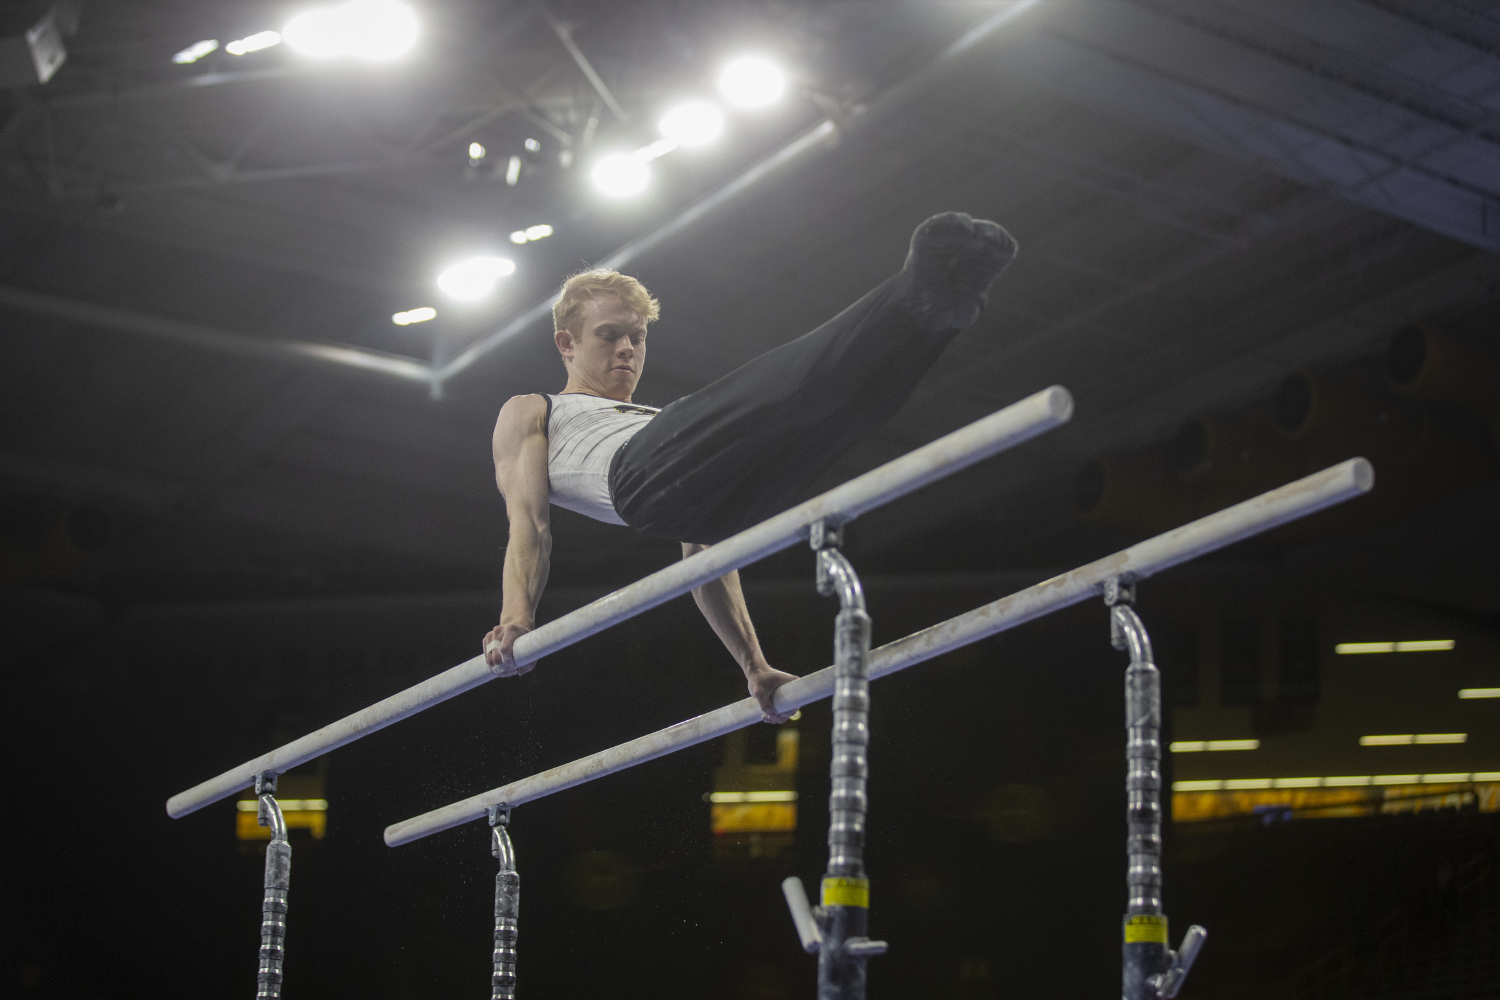 Nick Merryman gets ready to compete on the parallel bars during day two of the Big Ten Men's Gymnastics Championships in Carver-Hawkeye Arena on April 6, 2019. Gymnasts competed in individual competitions. Merryman placed 36th overall with a score of 13.600 on the parallel bars.